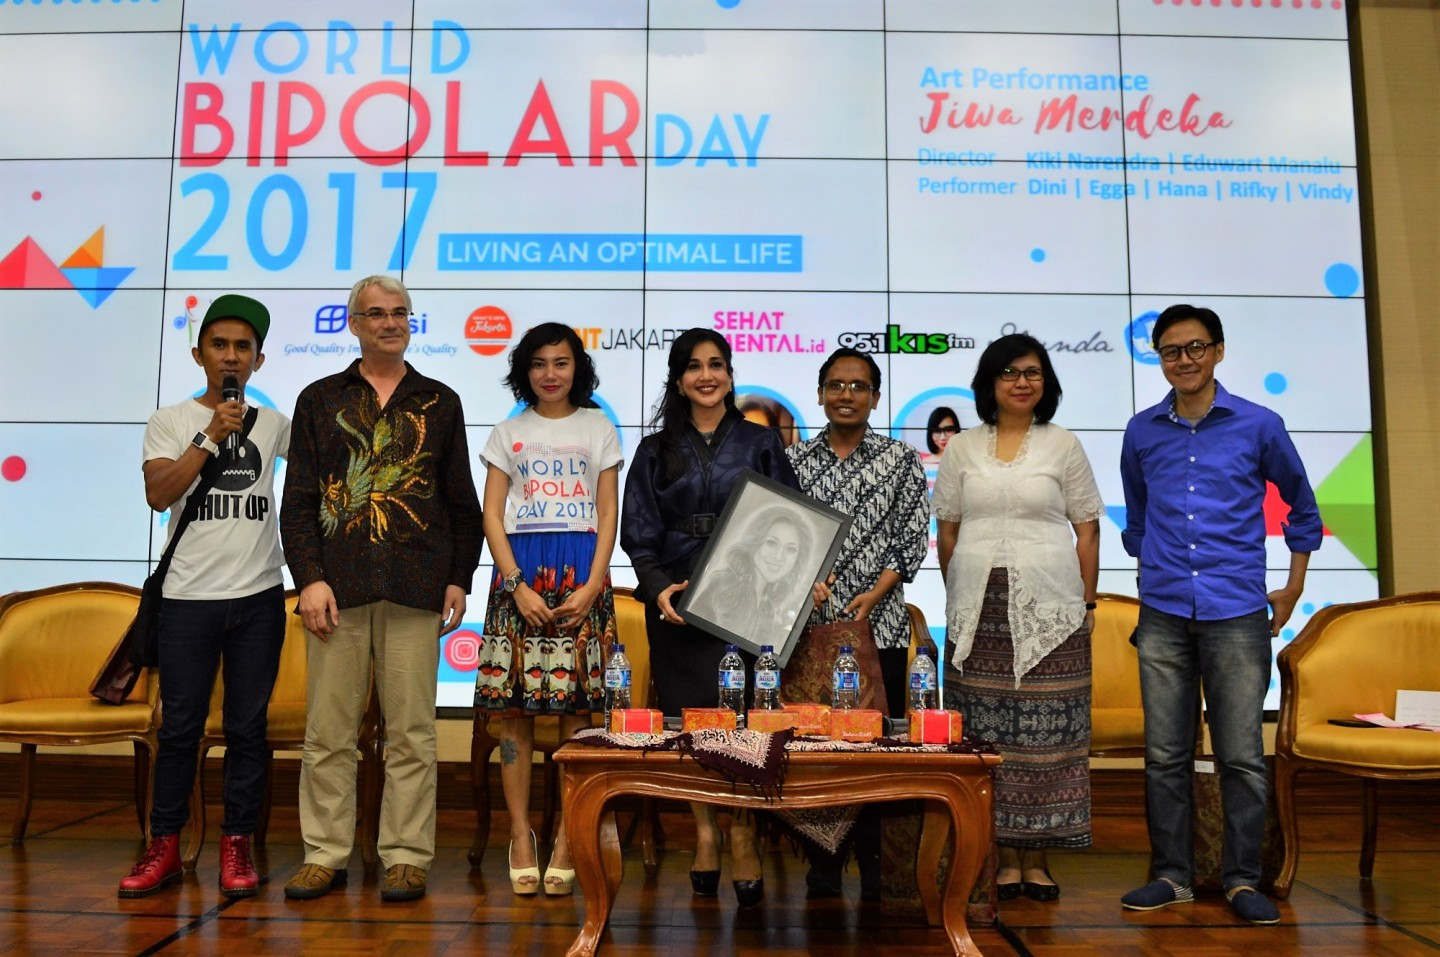 Some people standing on stage of World Bipolar Day event